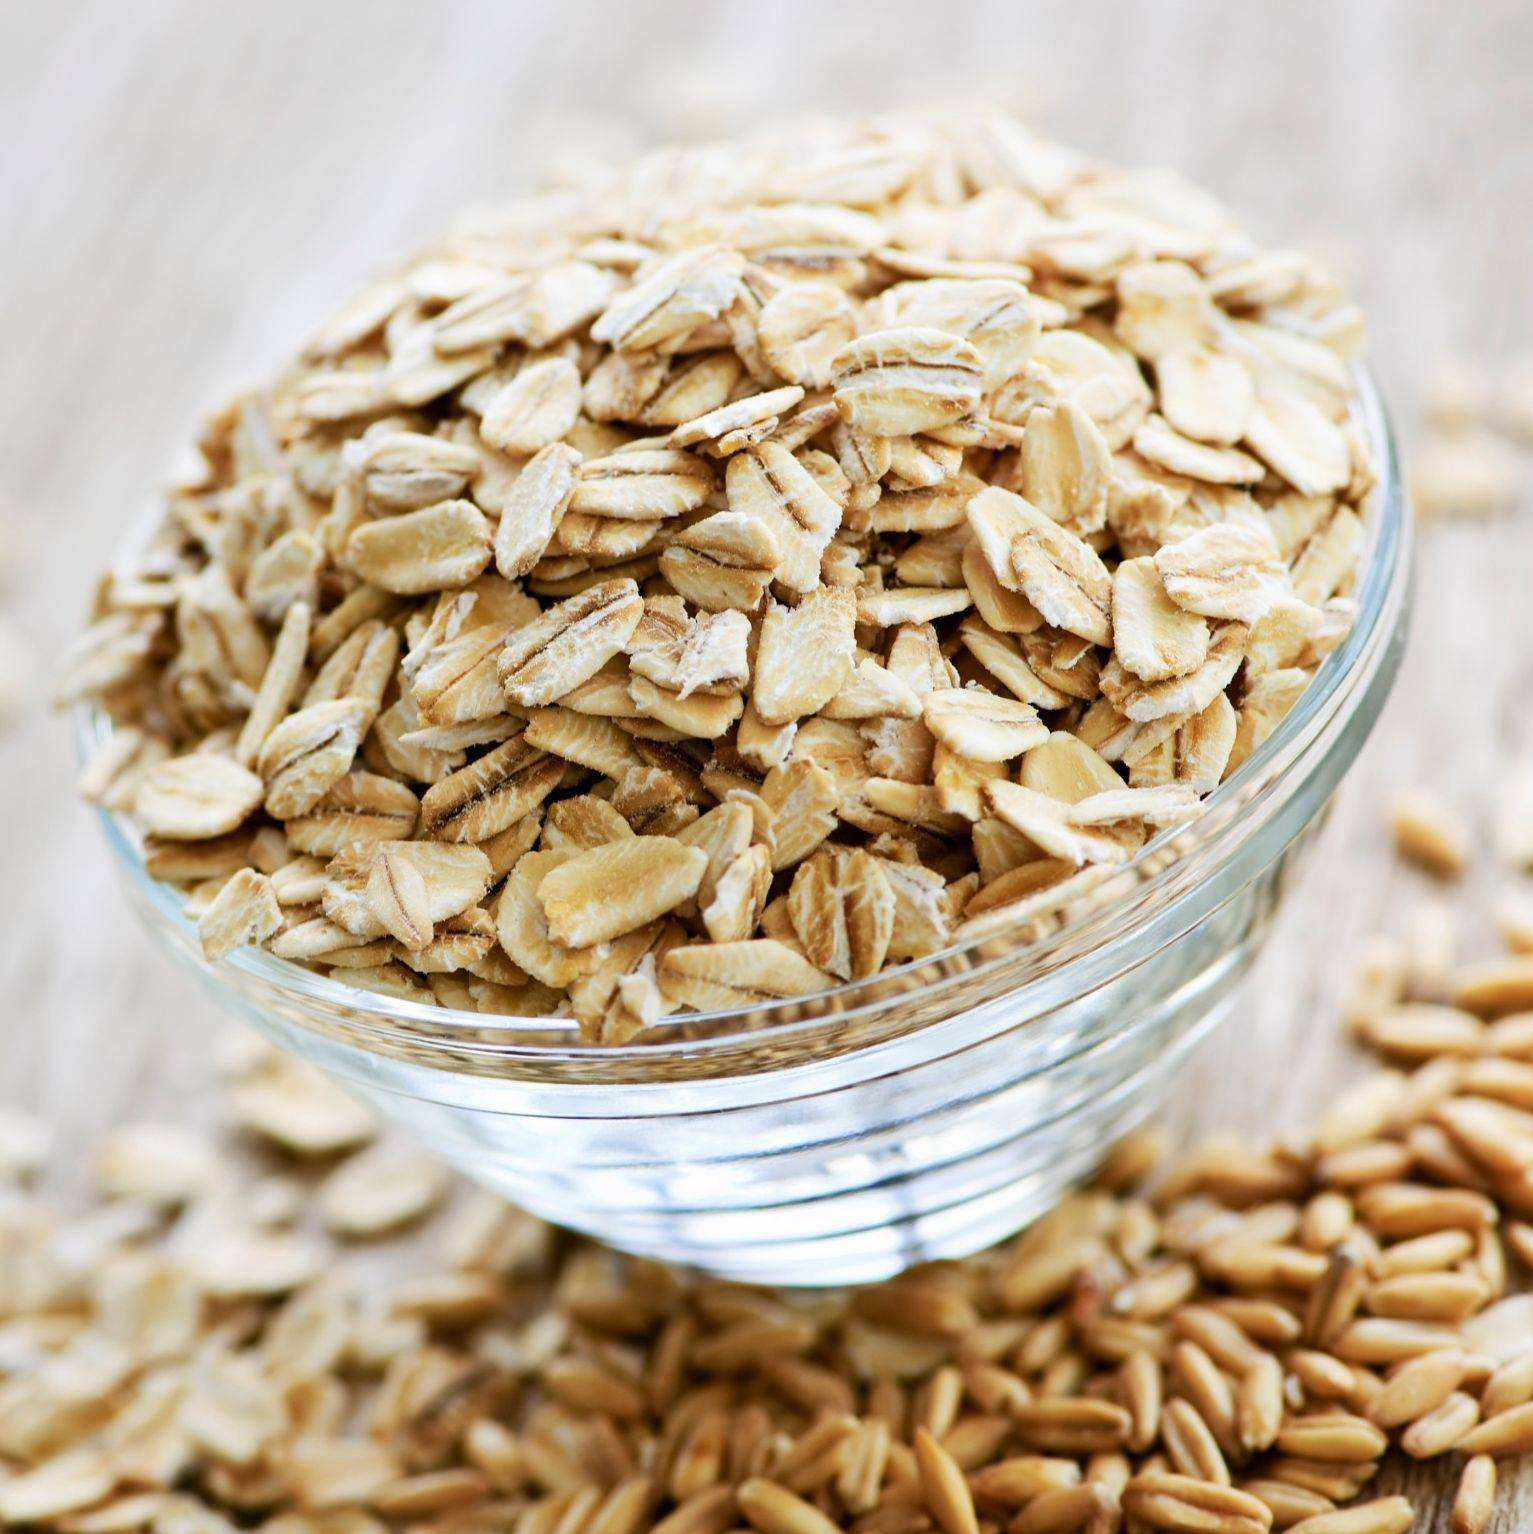 Oats in a variety of different foods can help you maintain good cholesterol levels.